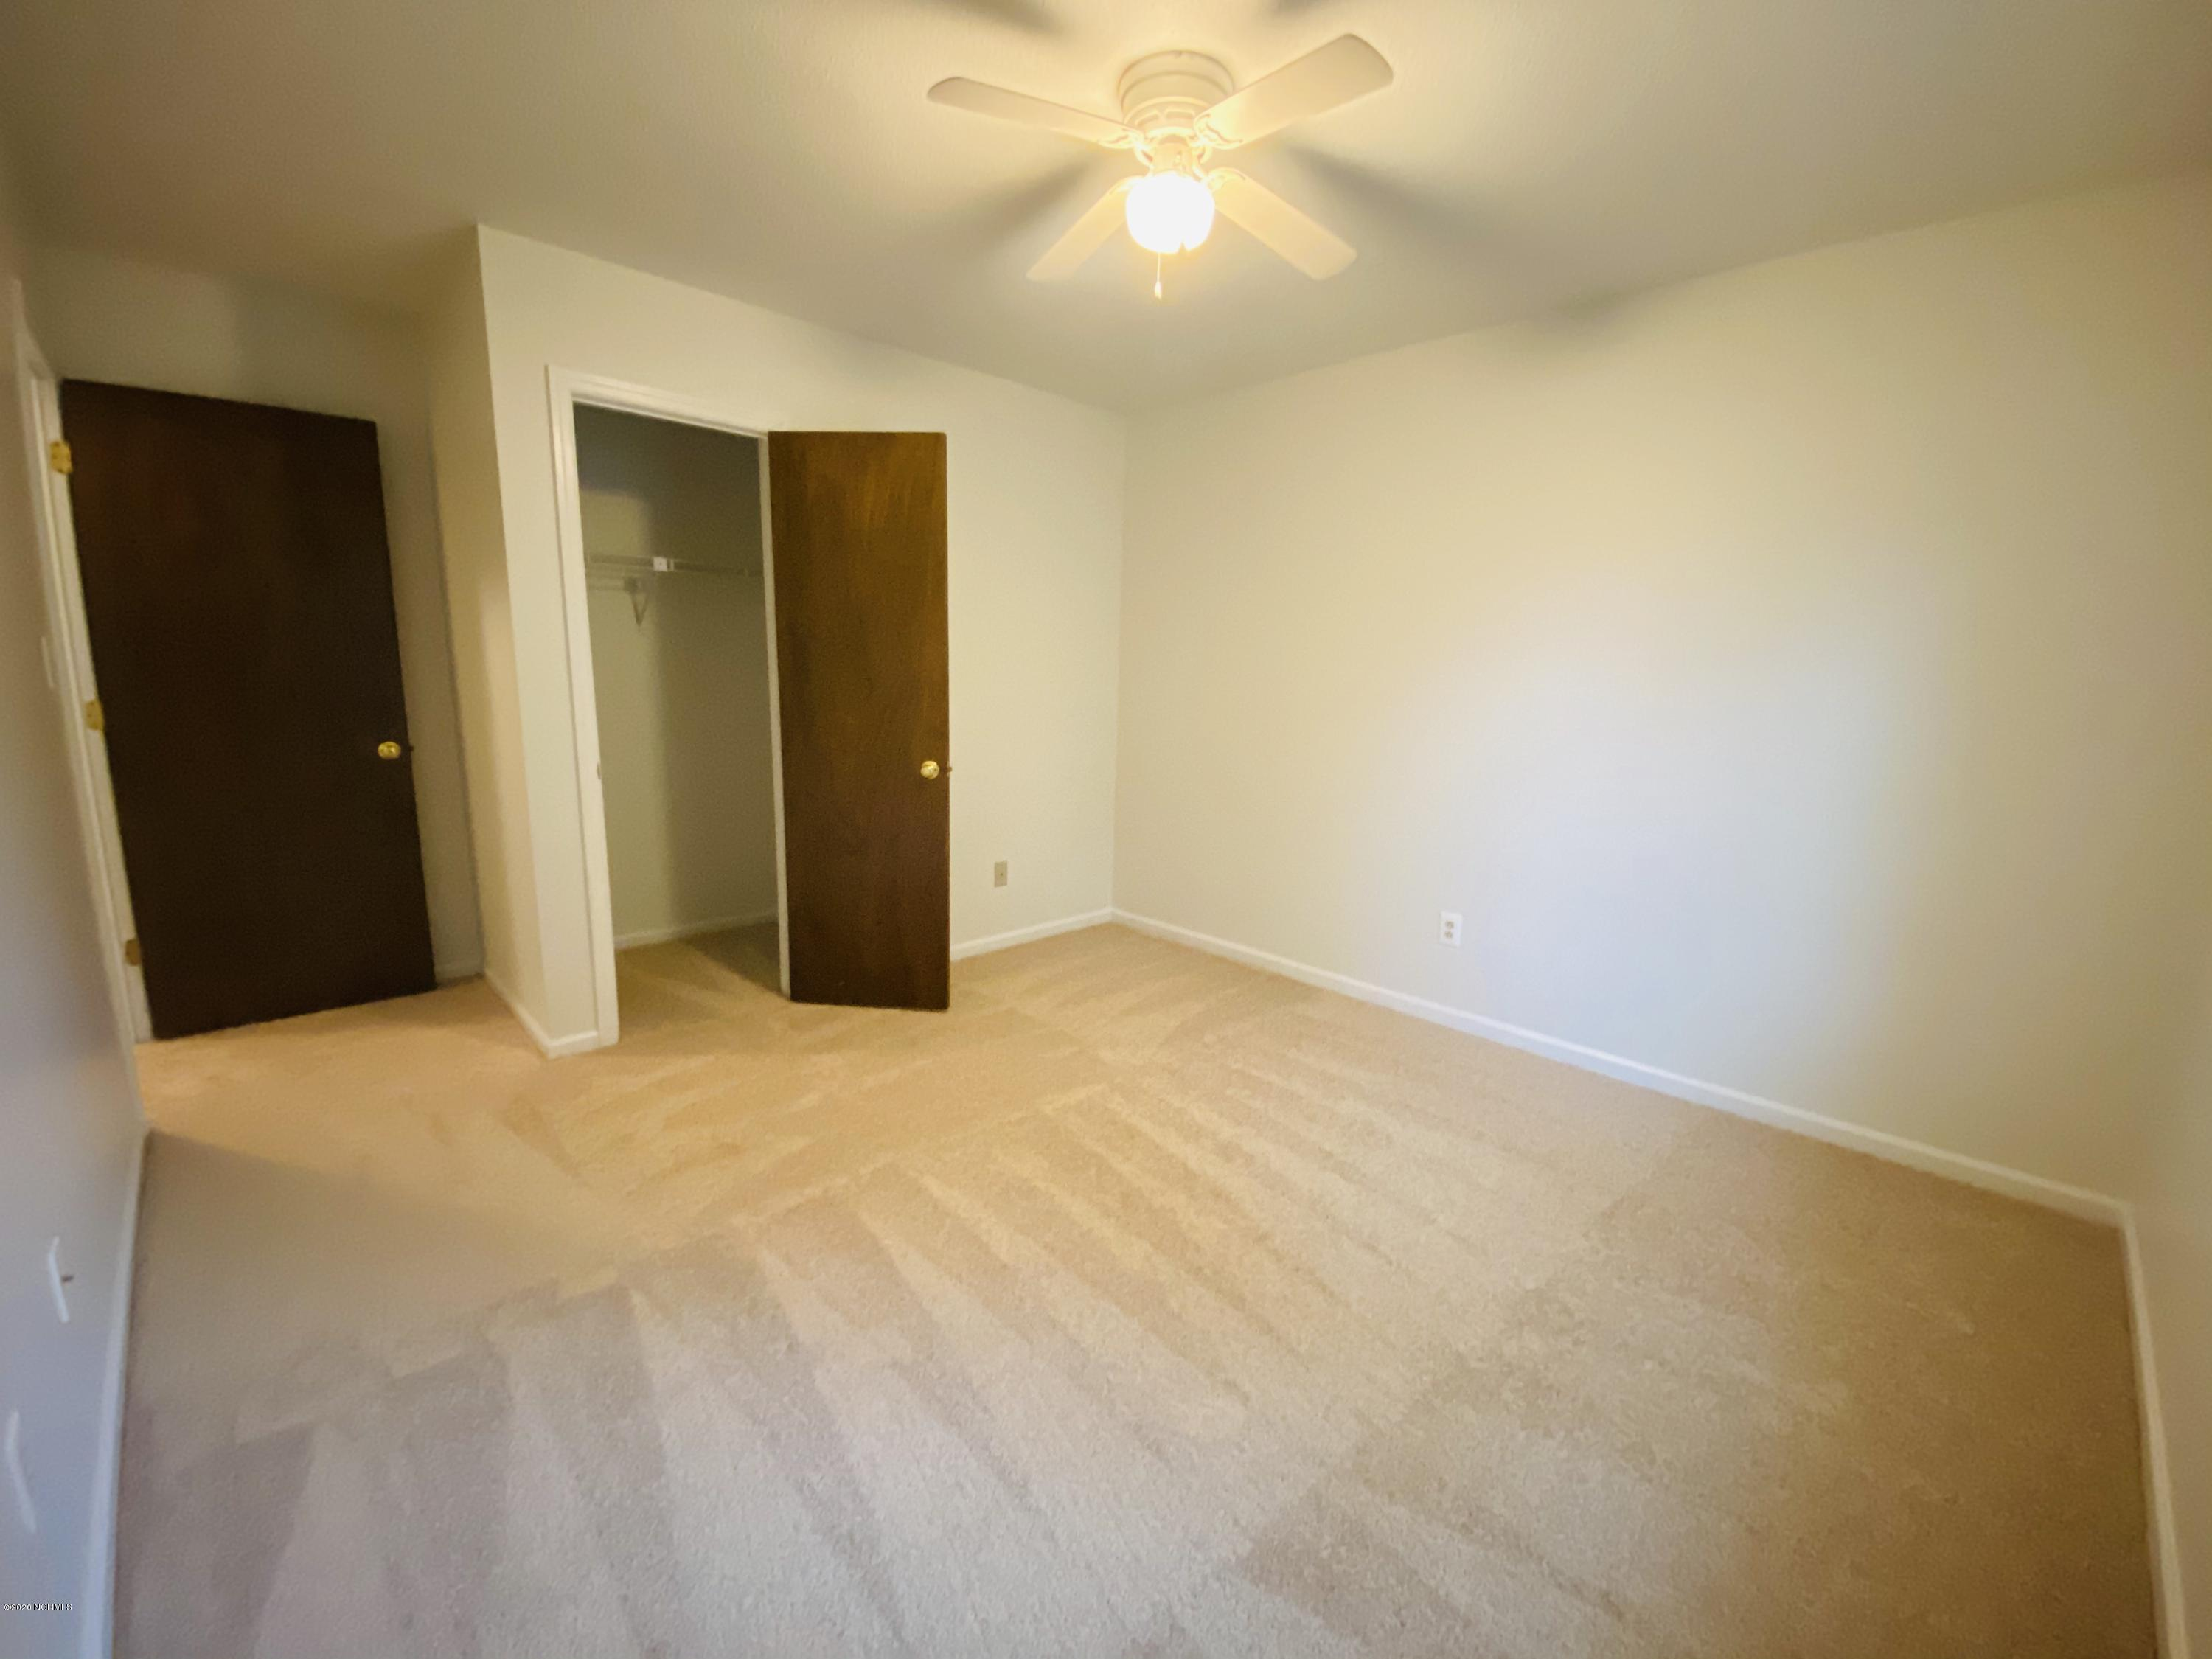 107 Pease Court, Jacksonville, North Carolina 28546, 4 Bedrooms Bedrooms, ,2 BathroomsBathrooms,Residential,For Sale,Pease,100231533